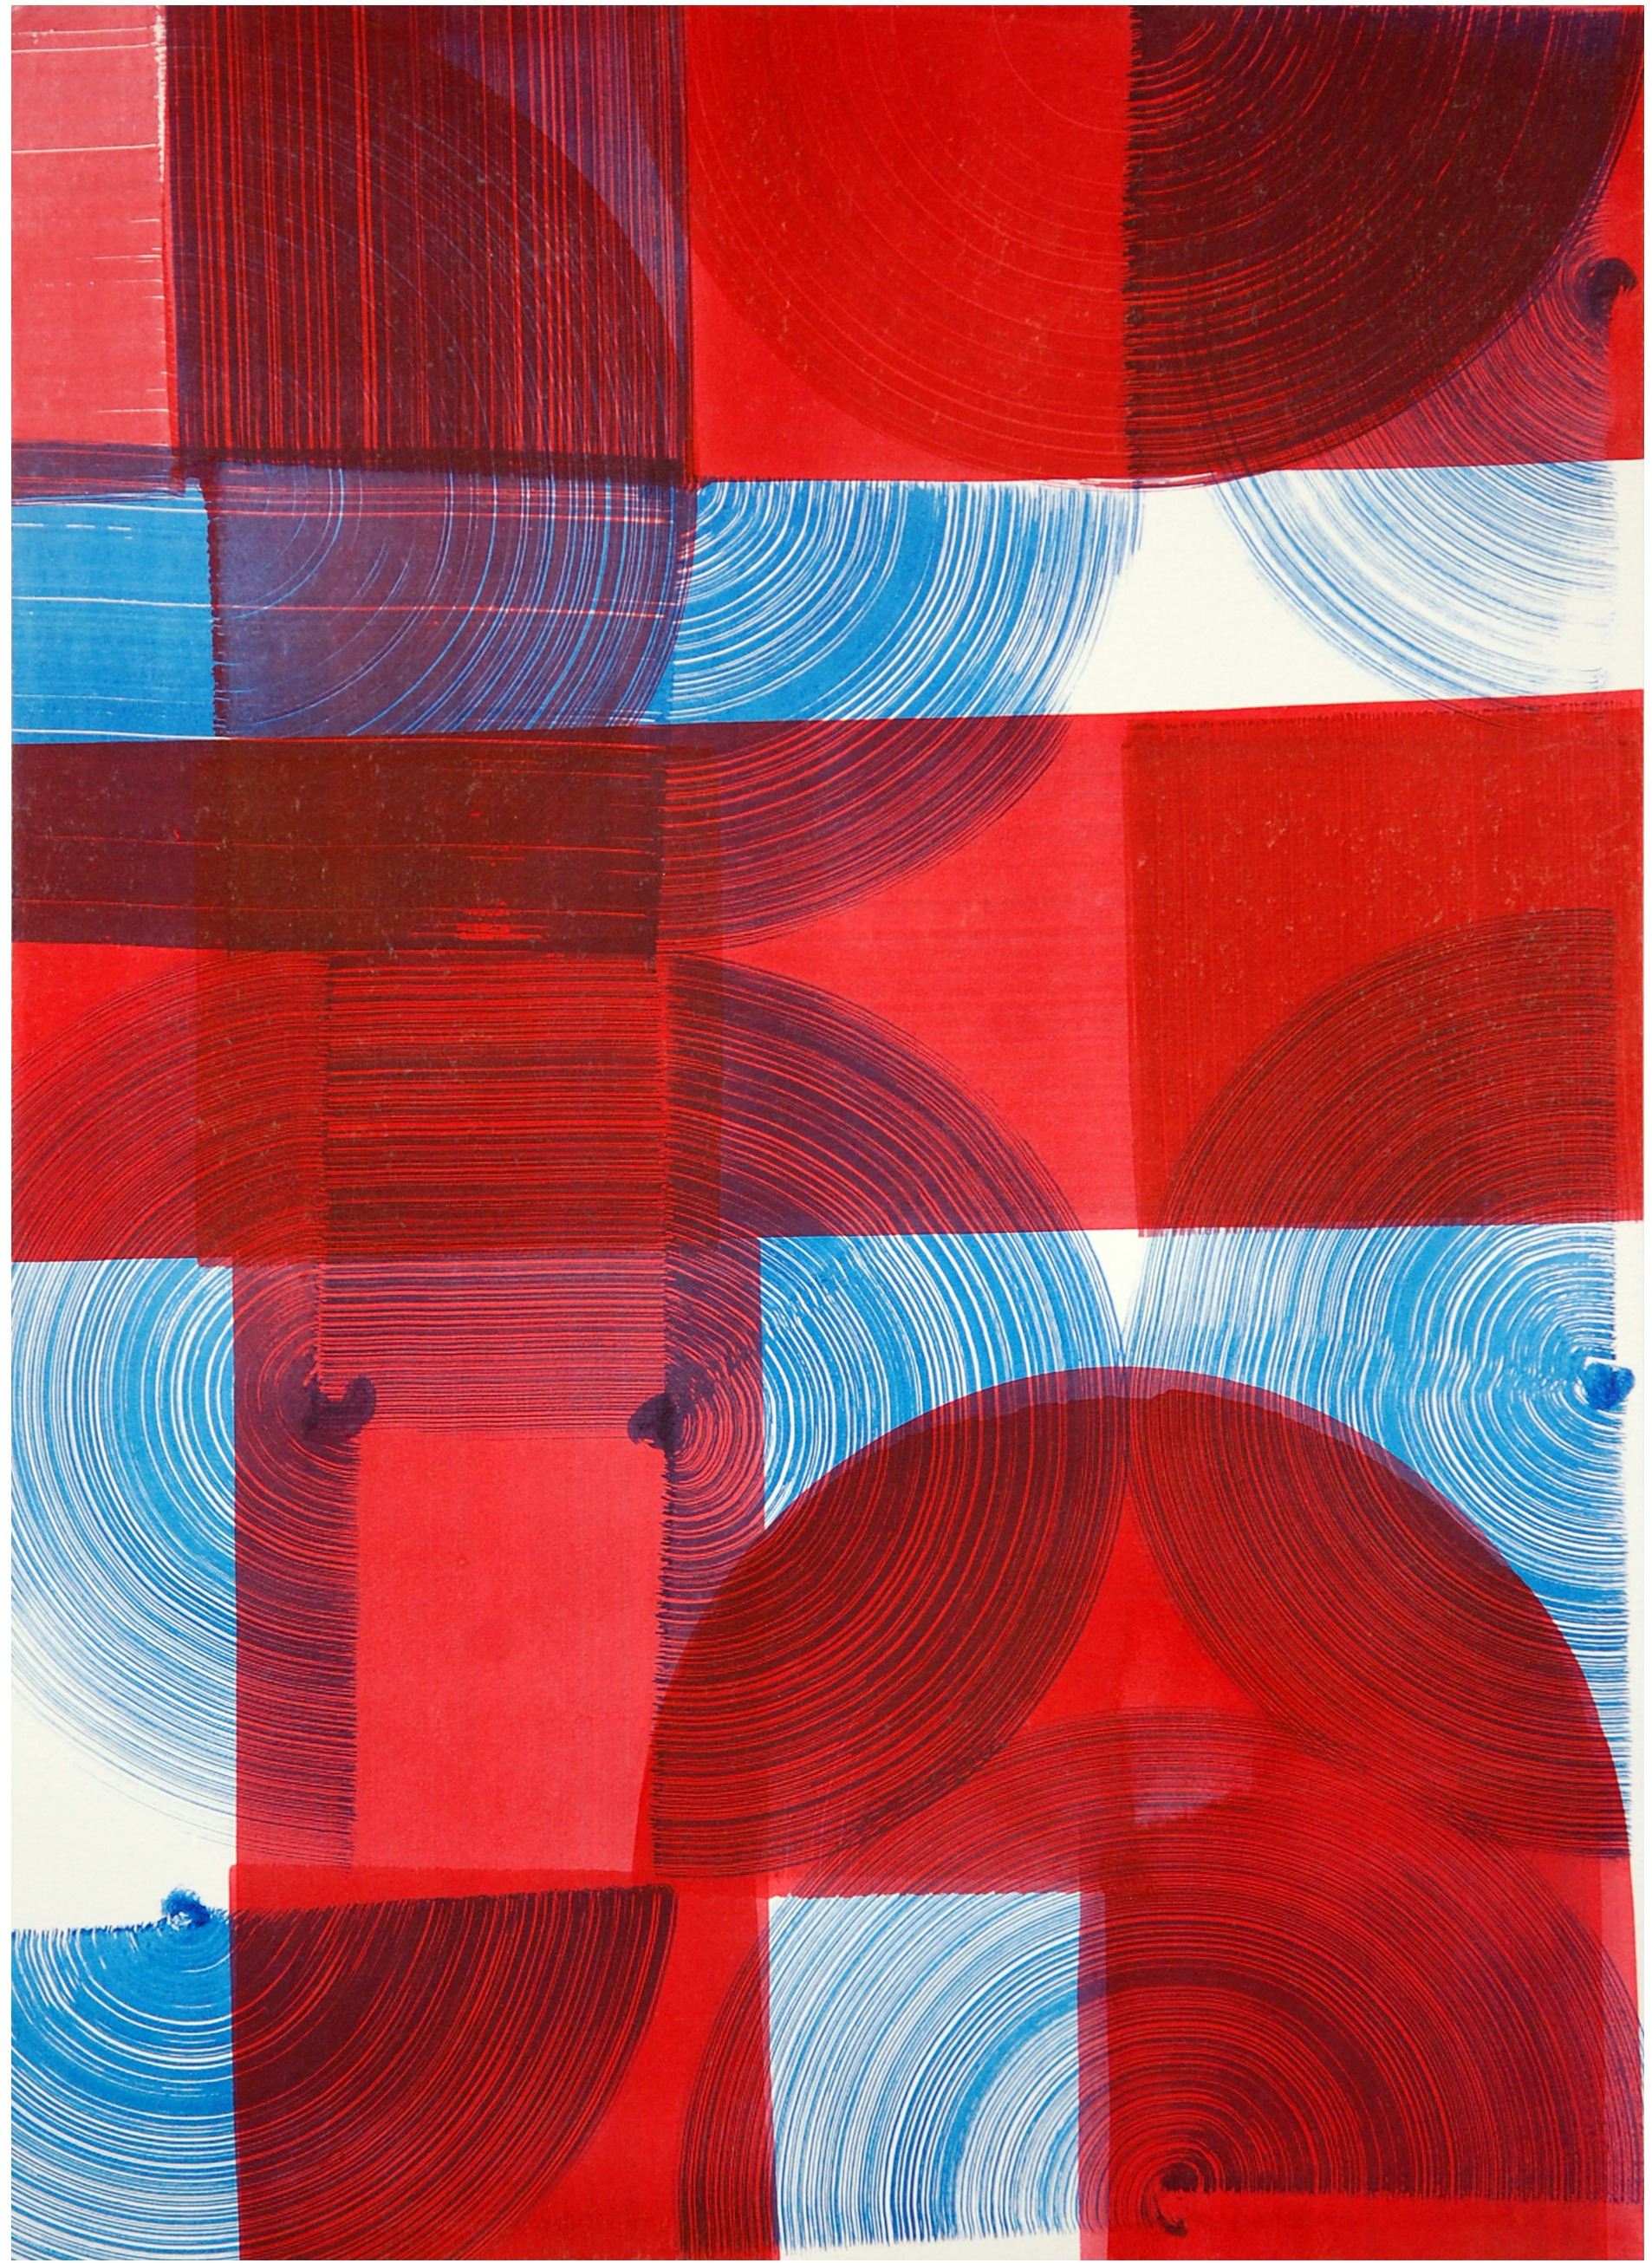 Carlos Silva, Red Blue (Mazy Drawing), 2016, ink on paper, 29,7x42 cm